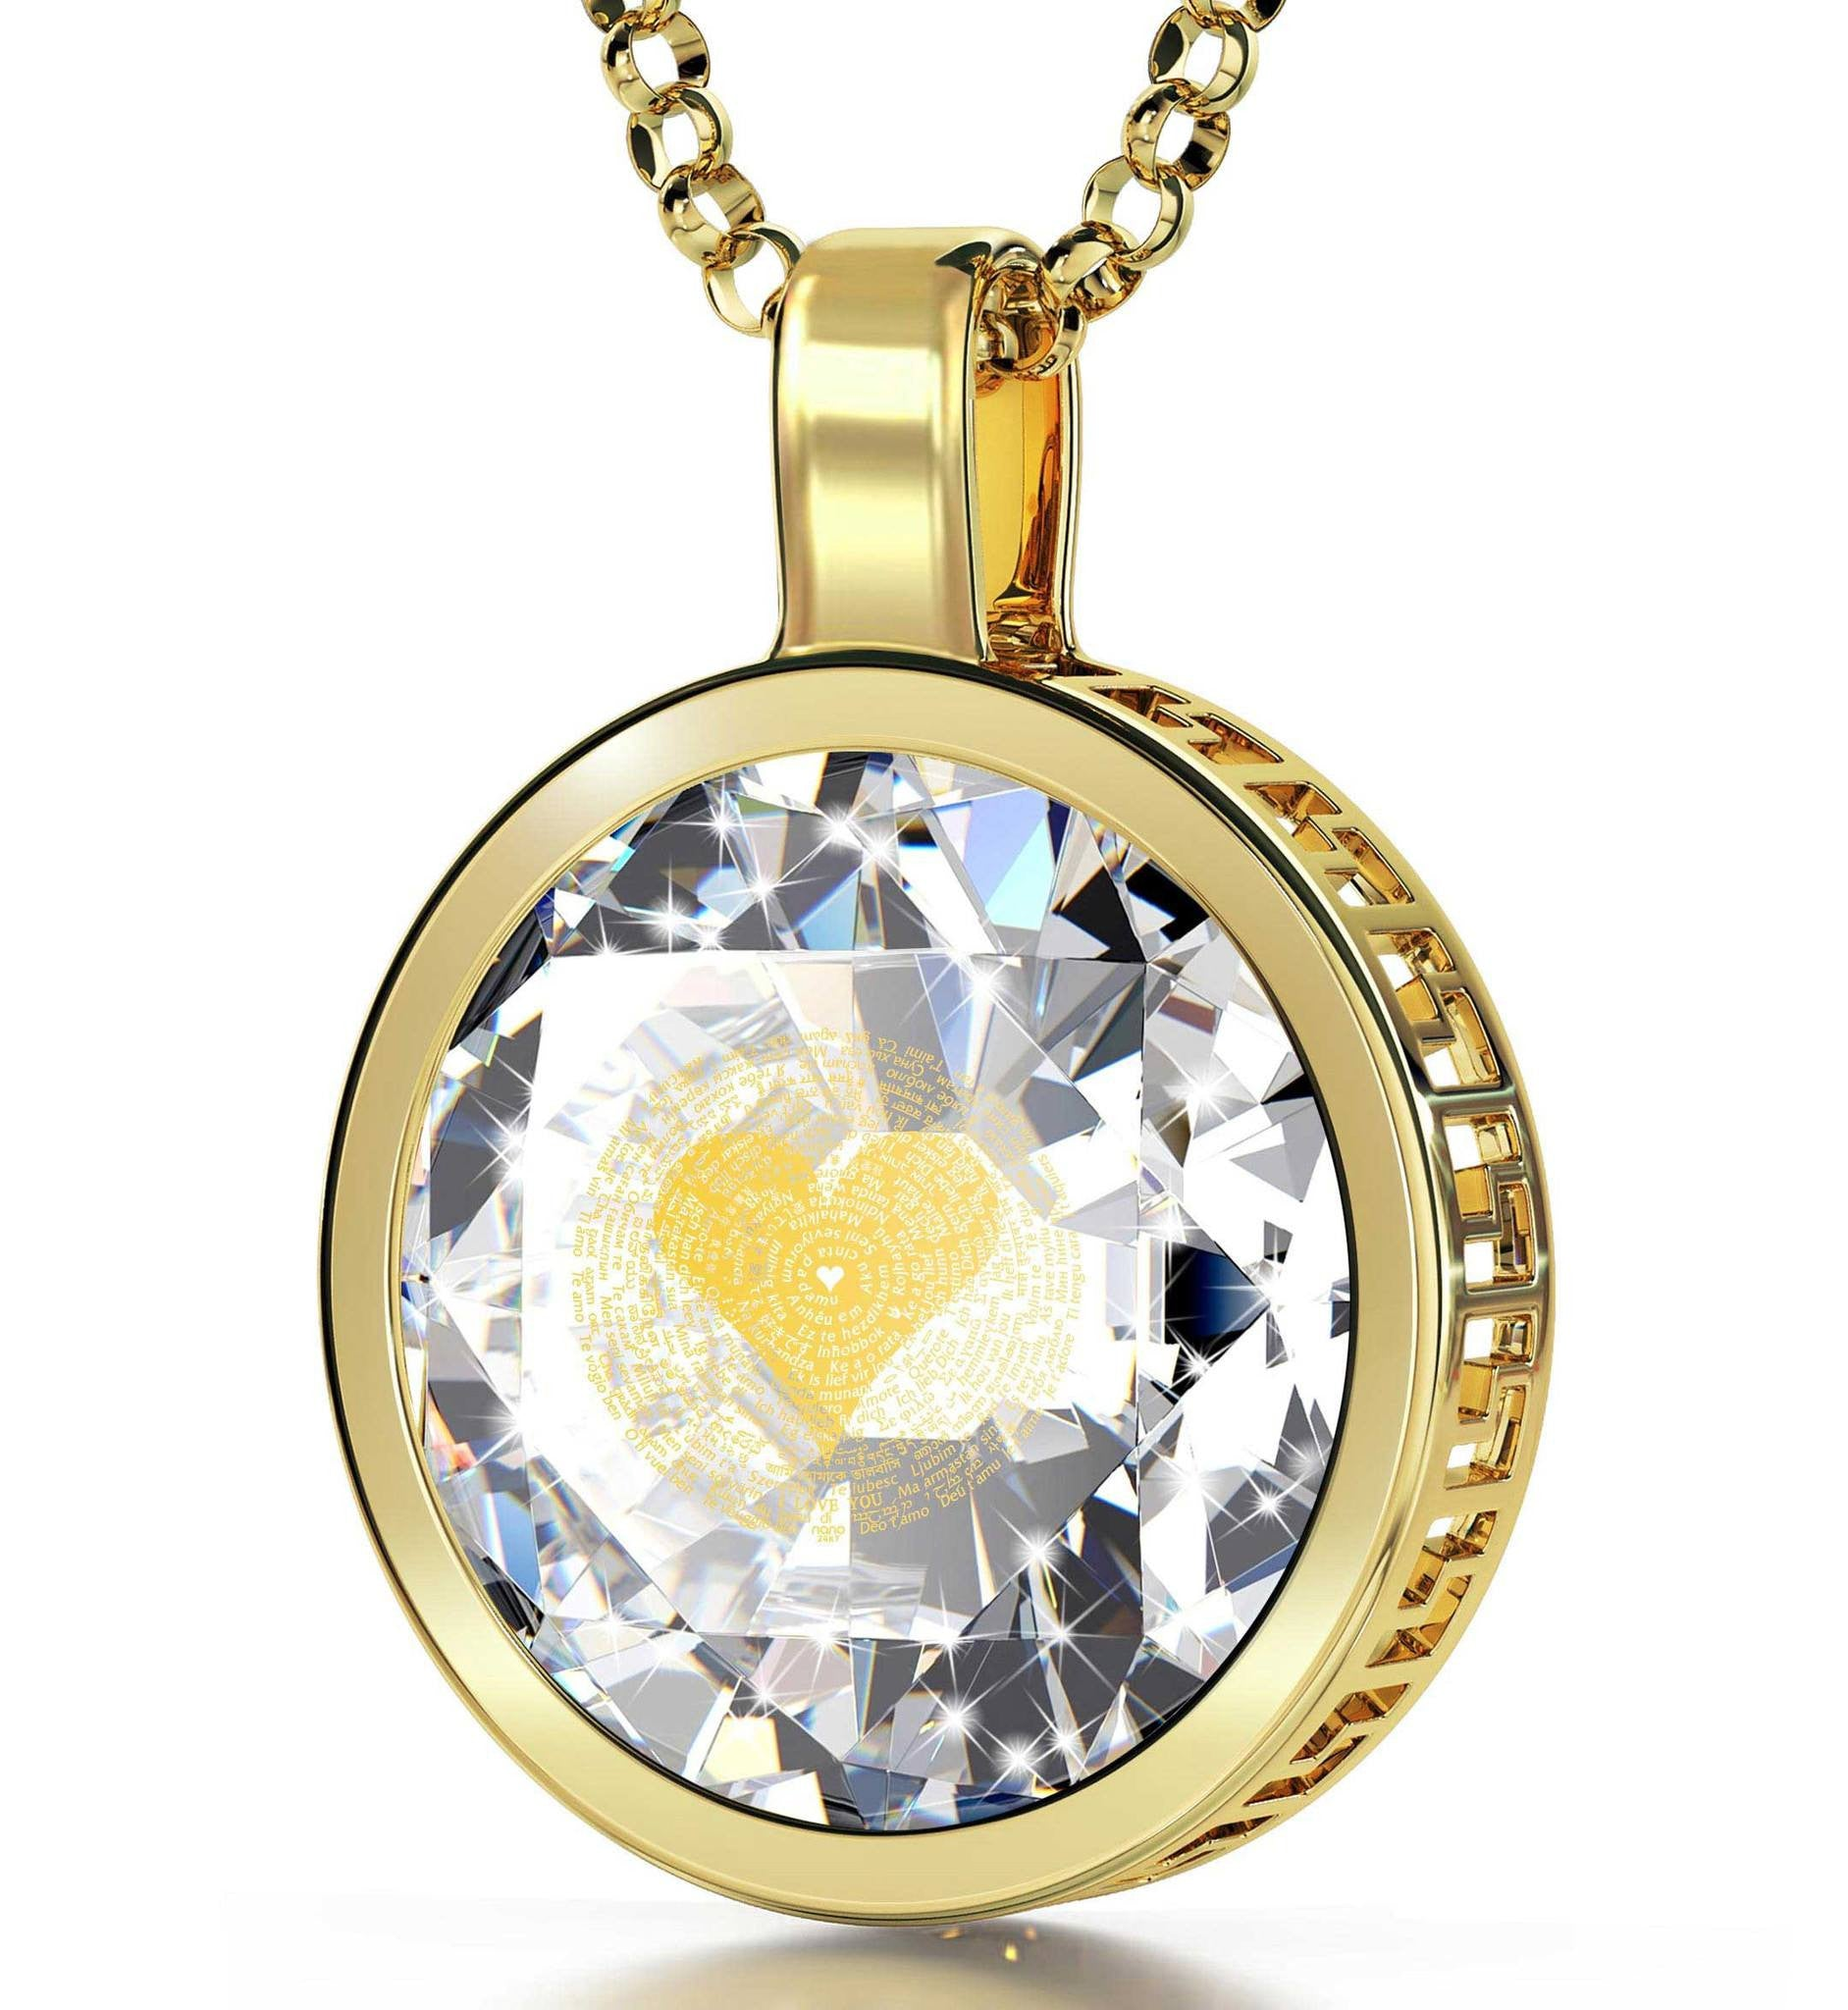 Valentine's Day Gifts for Wife: Engraved Necklaces, Fine 14k Gold Jewelry, Good Presents for Girlfriend